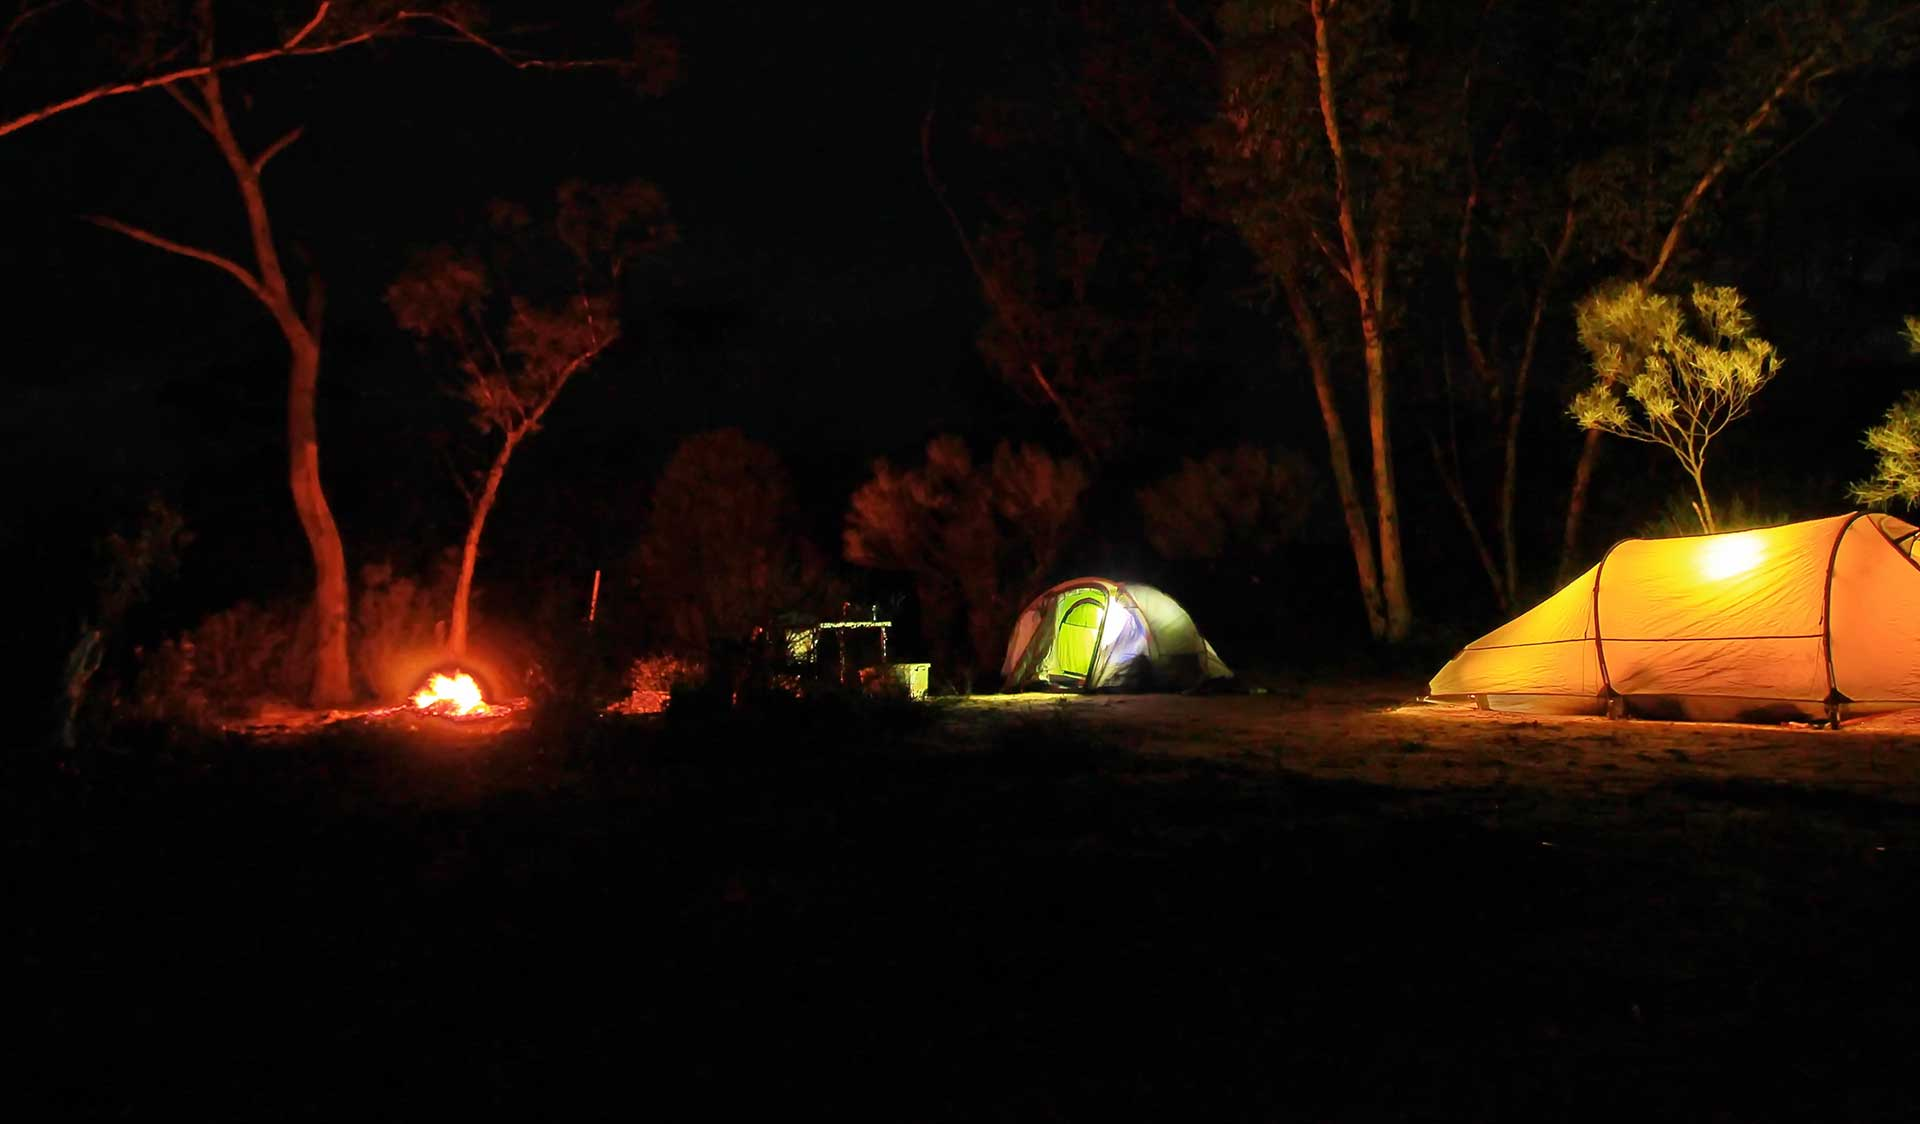 Three tents and a campfire at night time.